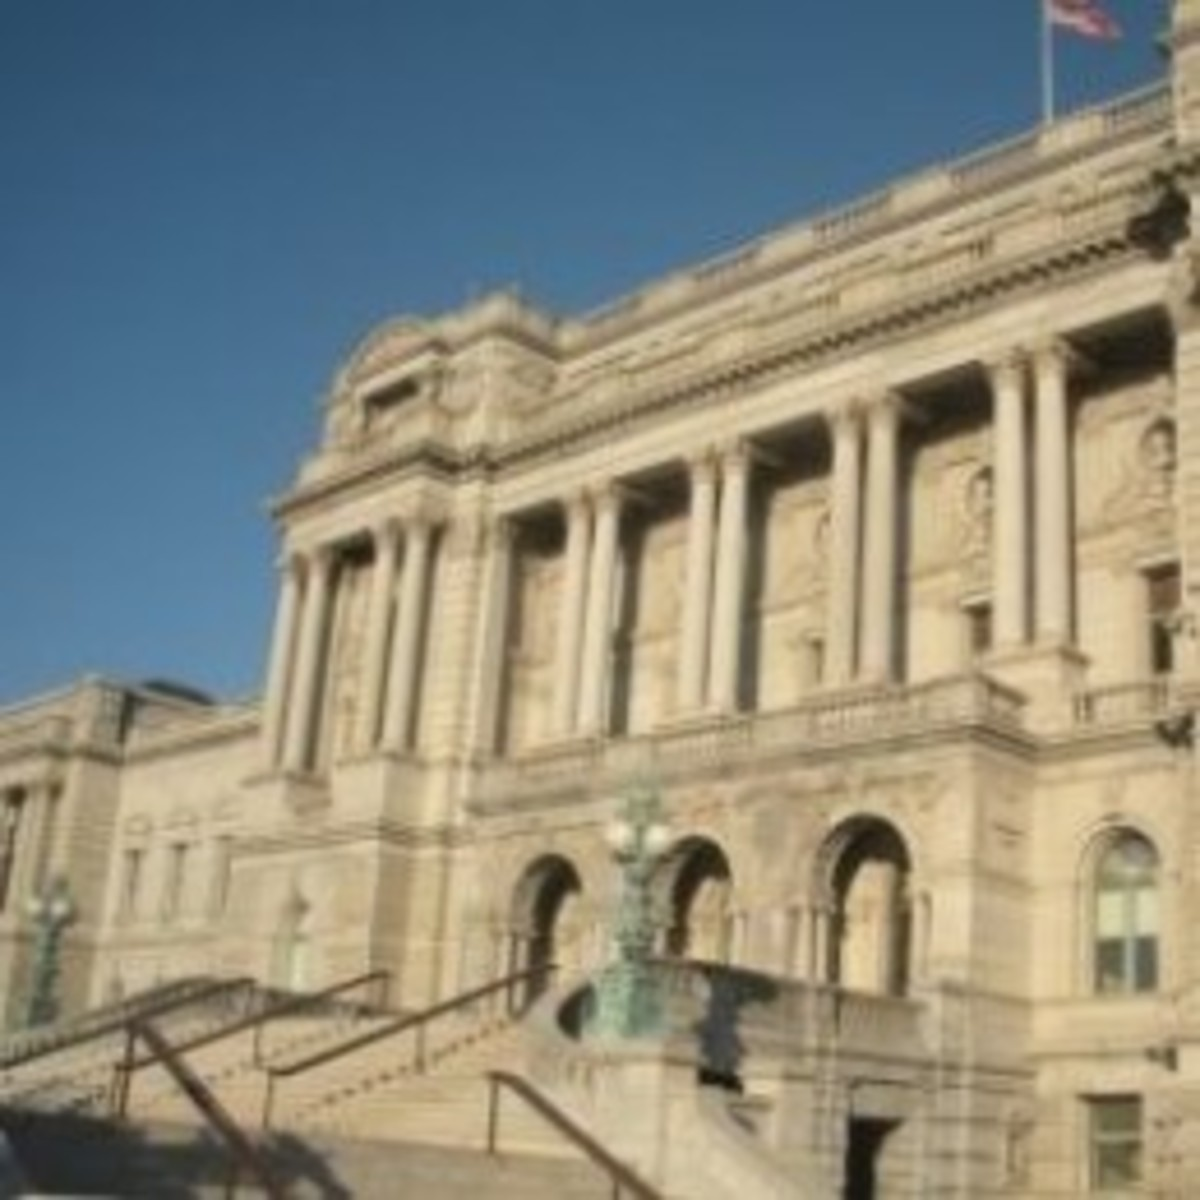 Highlights of the Library of Congress: Thomas Jefferson, Bob Hope and the Gutenberg Bible!